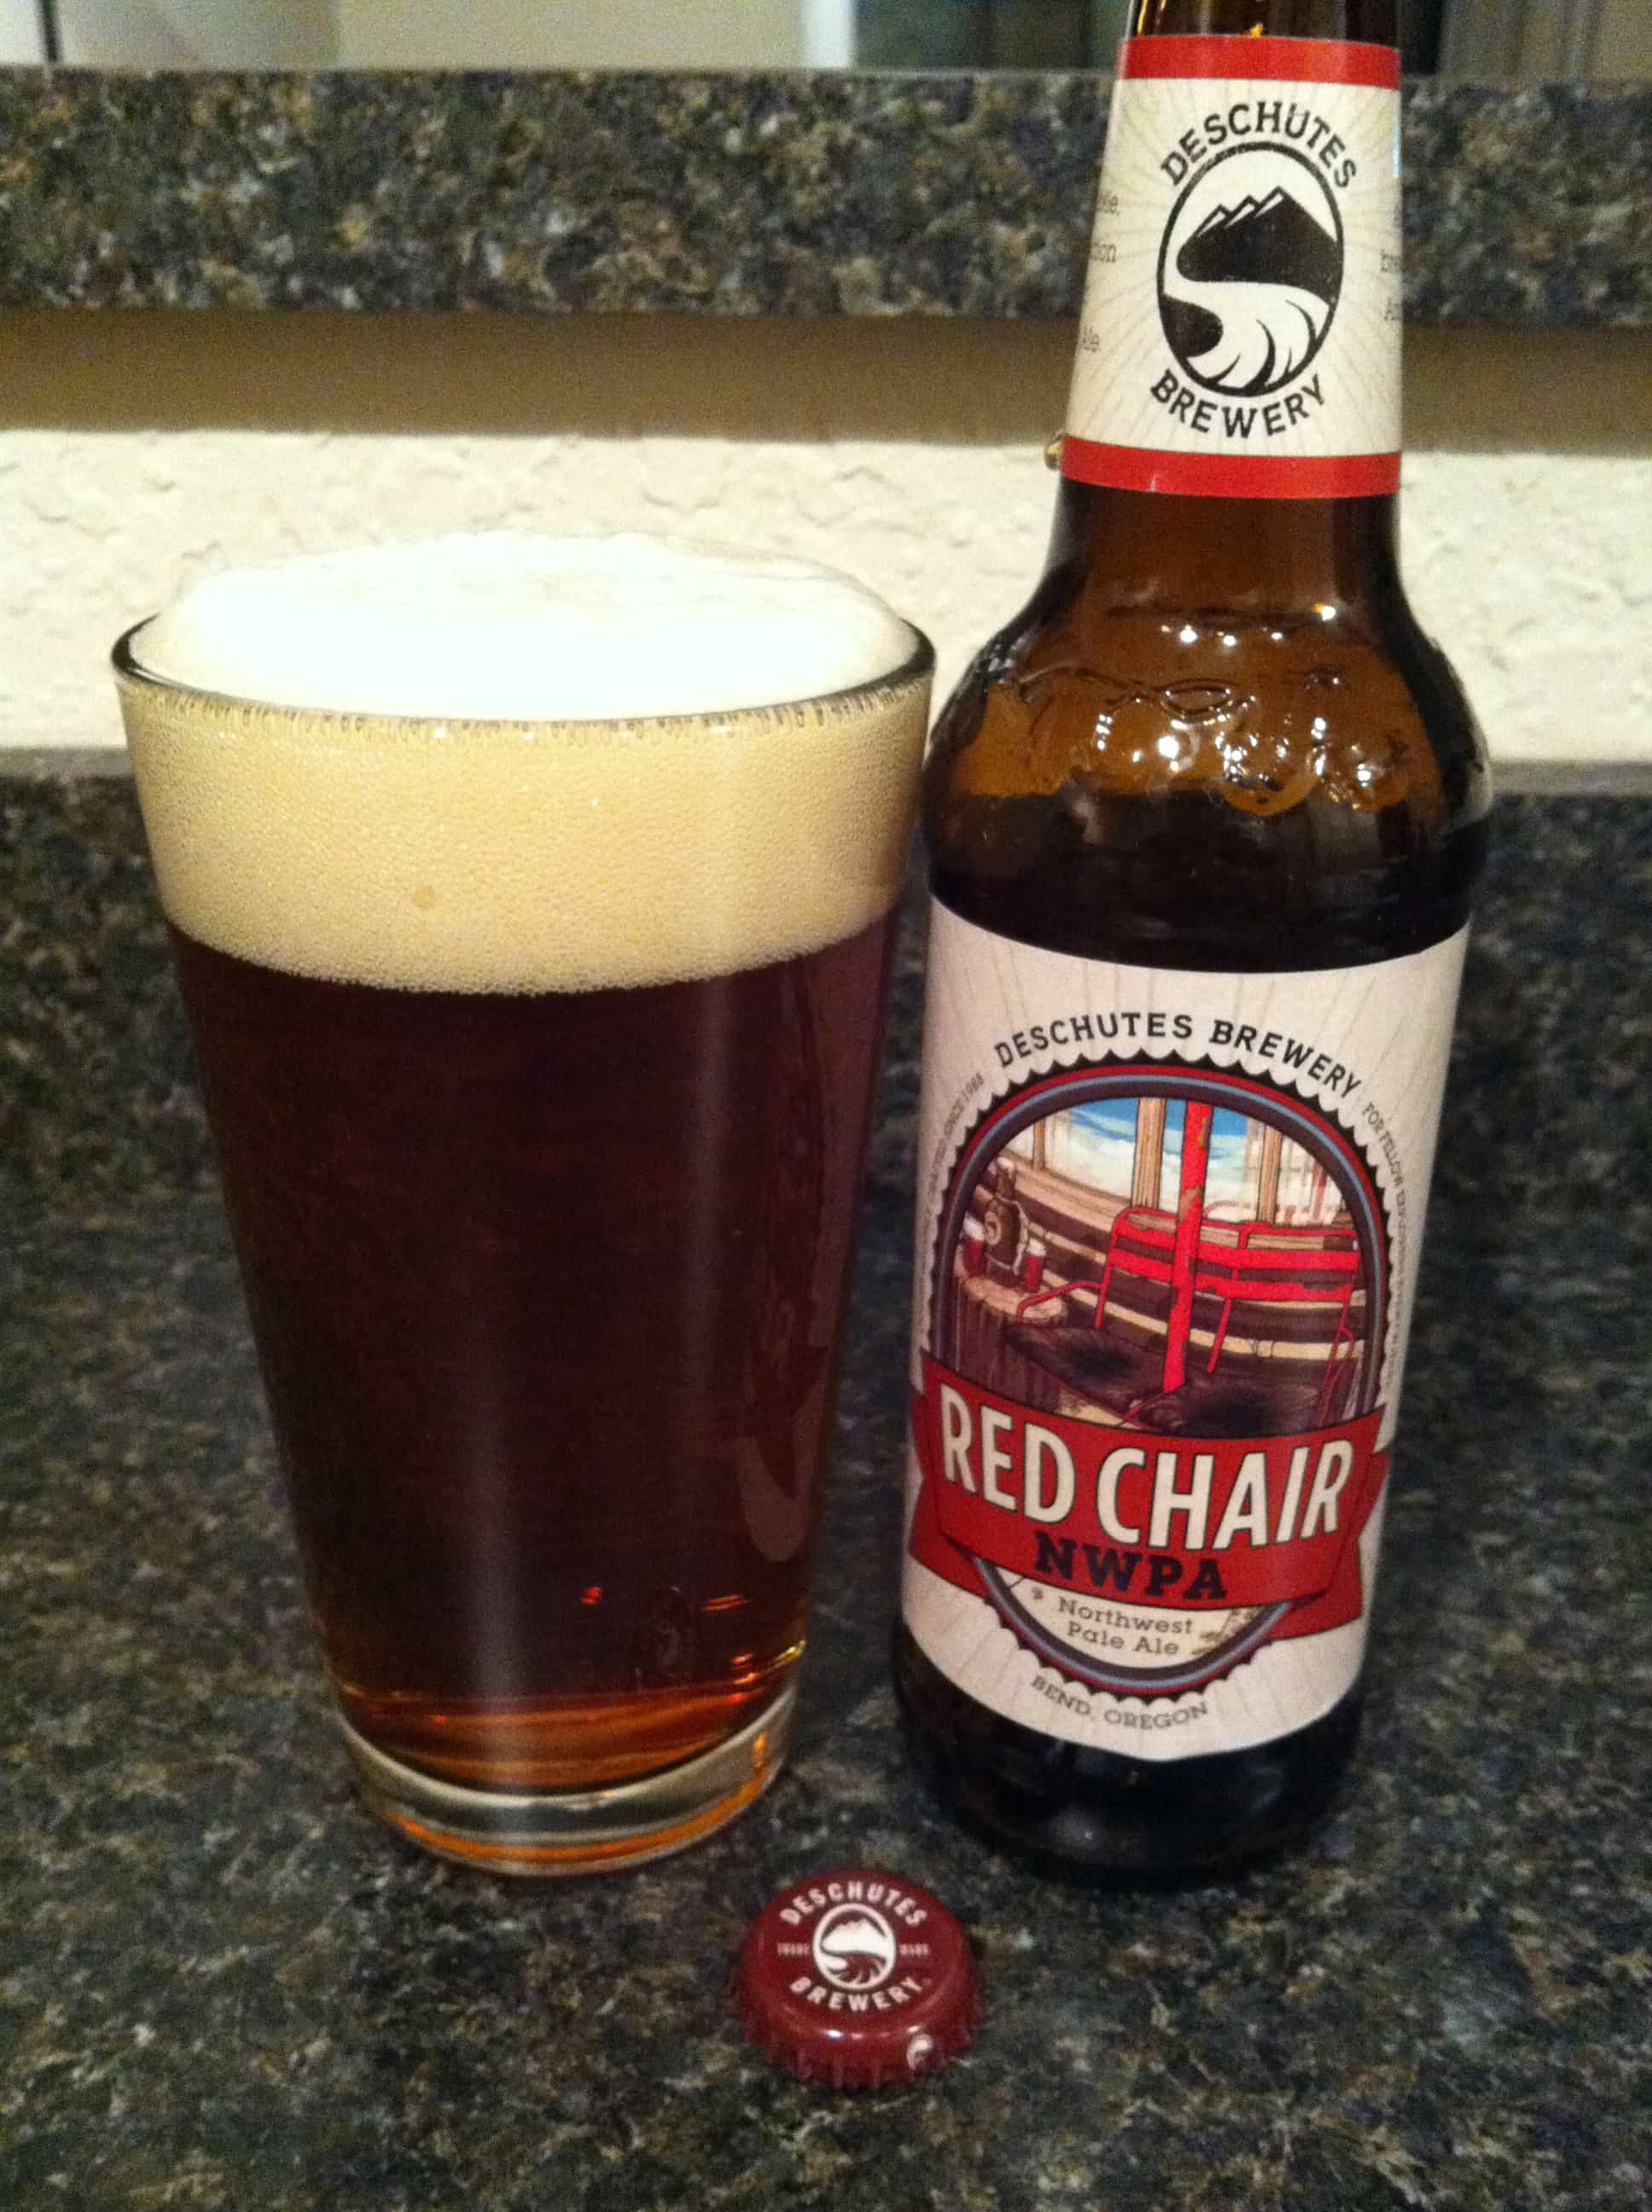 red chair nwpa abv black plastic hire deschutes craftbeertime